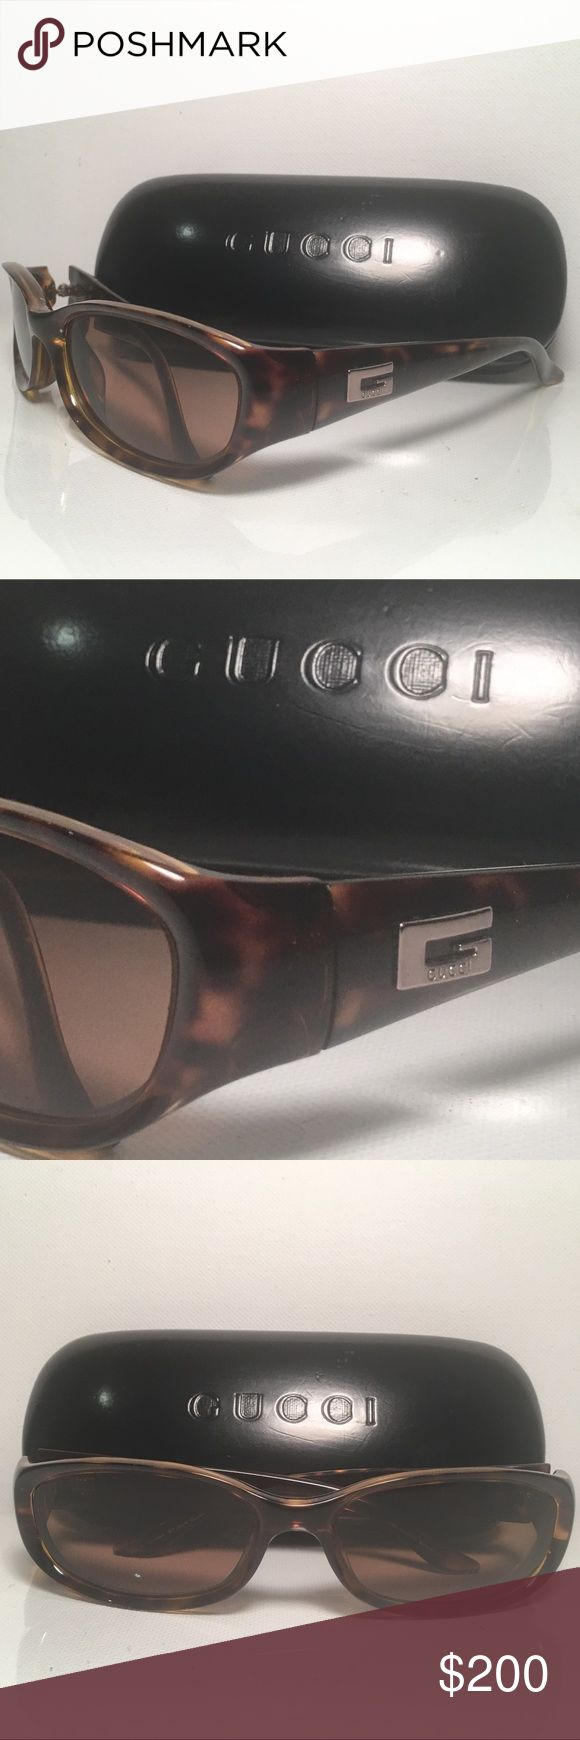 Authentic Gucci Tortoise Sunglasses 2456/s Gucci Tortoise Sunglasses 2456/s  These are gorgeous authentic GUCCI Sunglasses 2456/S.  These sunglasses feature the traditional design seen in Italian films of the 1950's and have the iconic Gucci G on the sides. They are best used poolside at the resort under the sun while sipping an ice cold lemonade.  These are prescription sunglasses the frame is in excellent condition and could be used with different lenses.  Made in Italy 🇮🇹 Gucci…